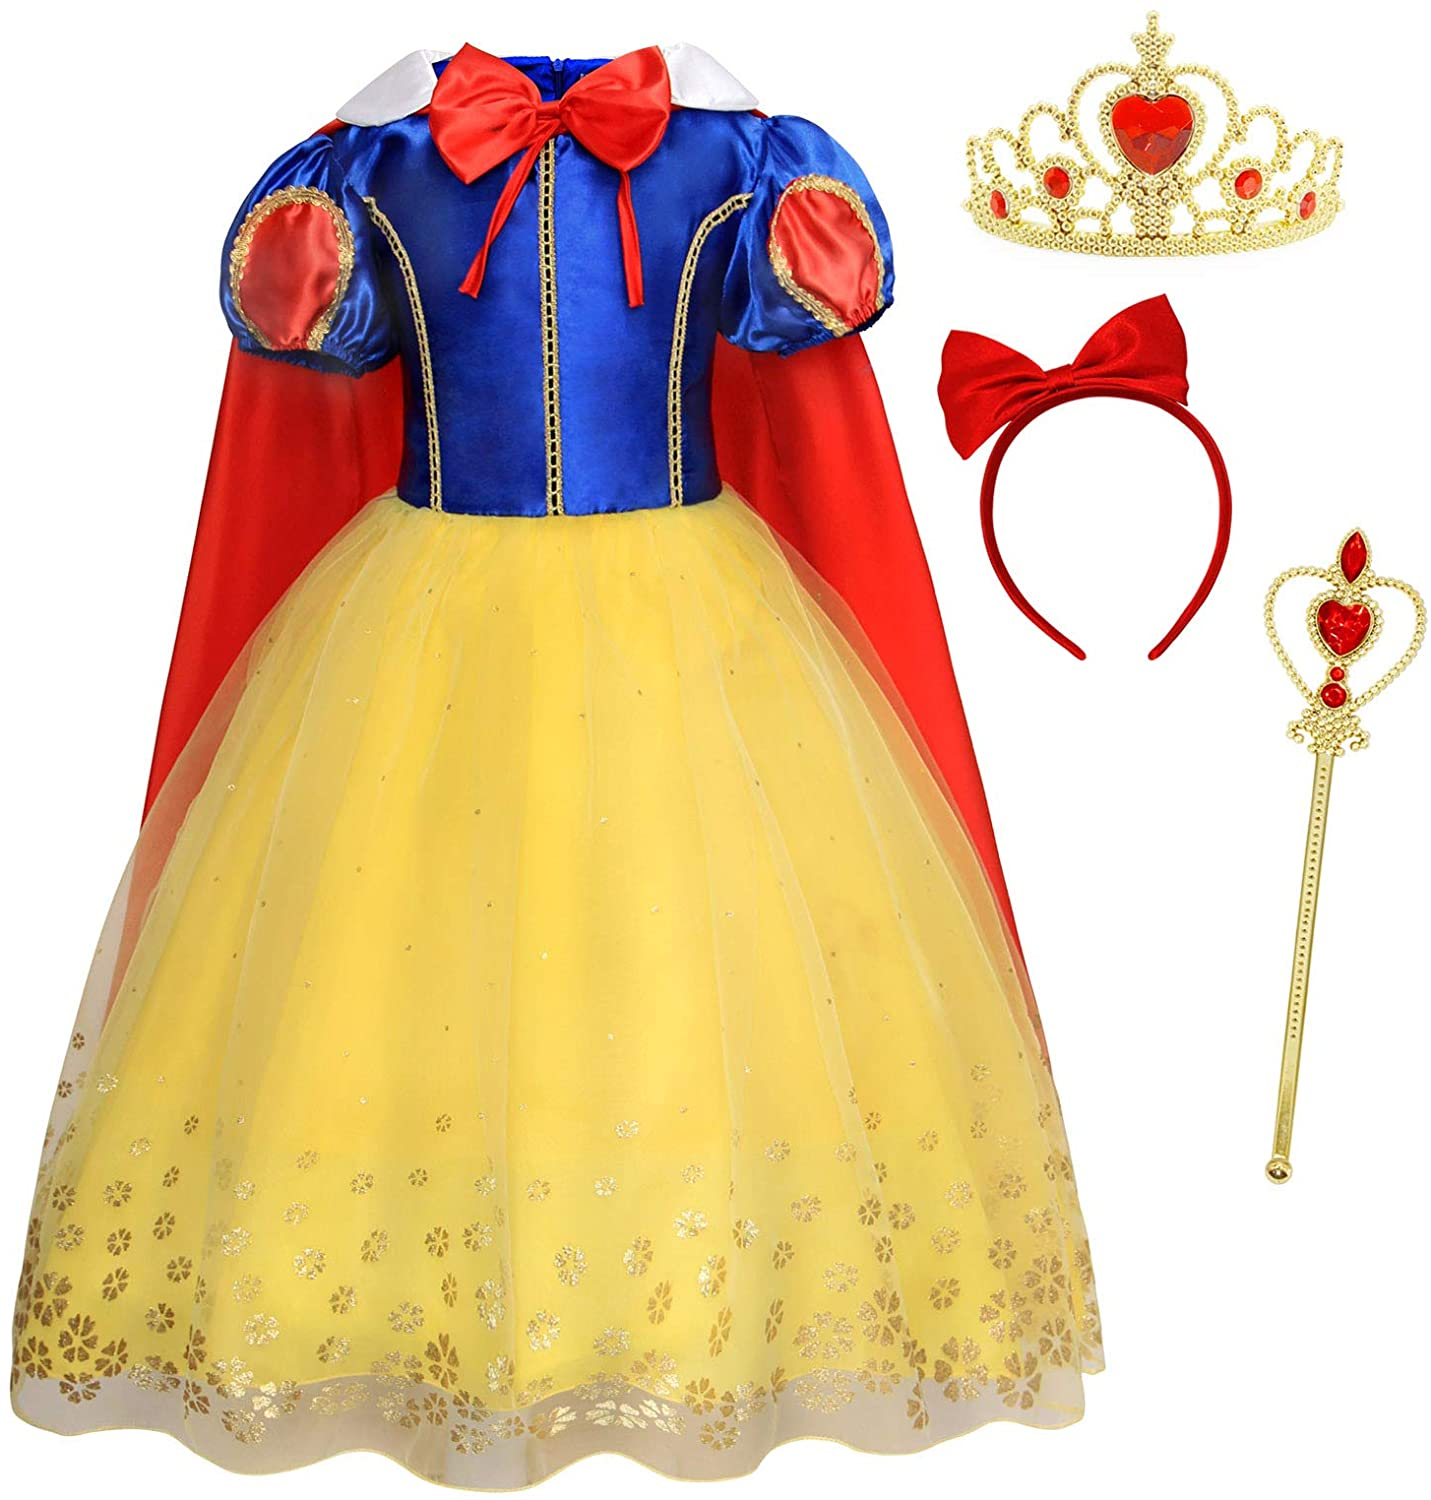 HenzWorld Princess Costume Dress Cape Birthday Party Cosplay Outfits Headband Jewelry Accessories Little Girls 1-8 Years